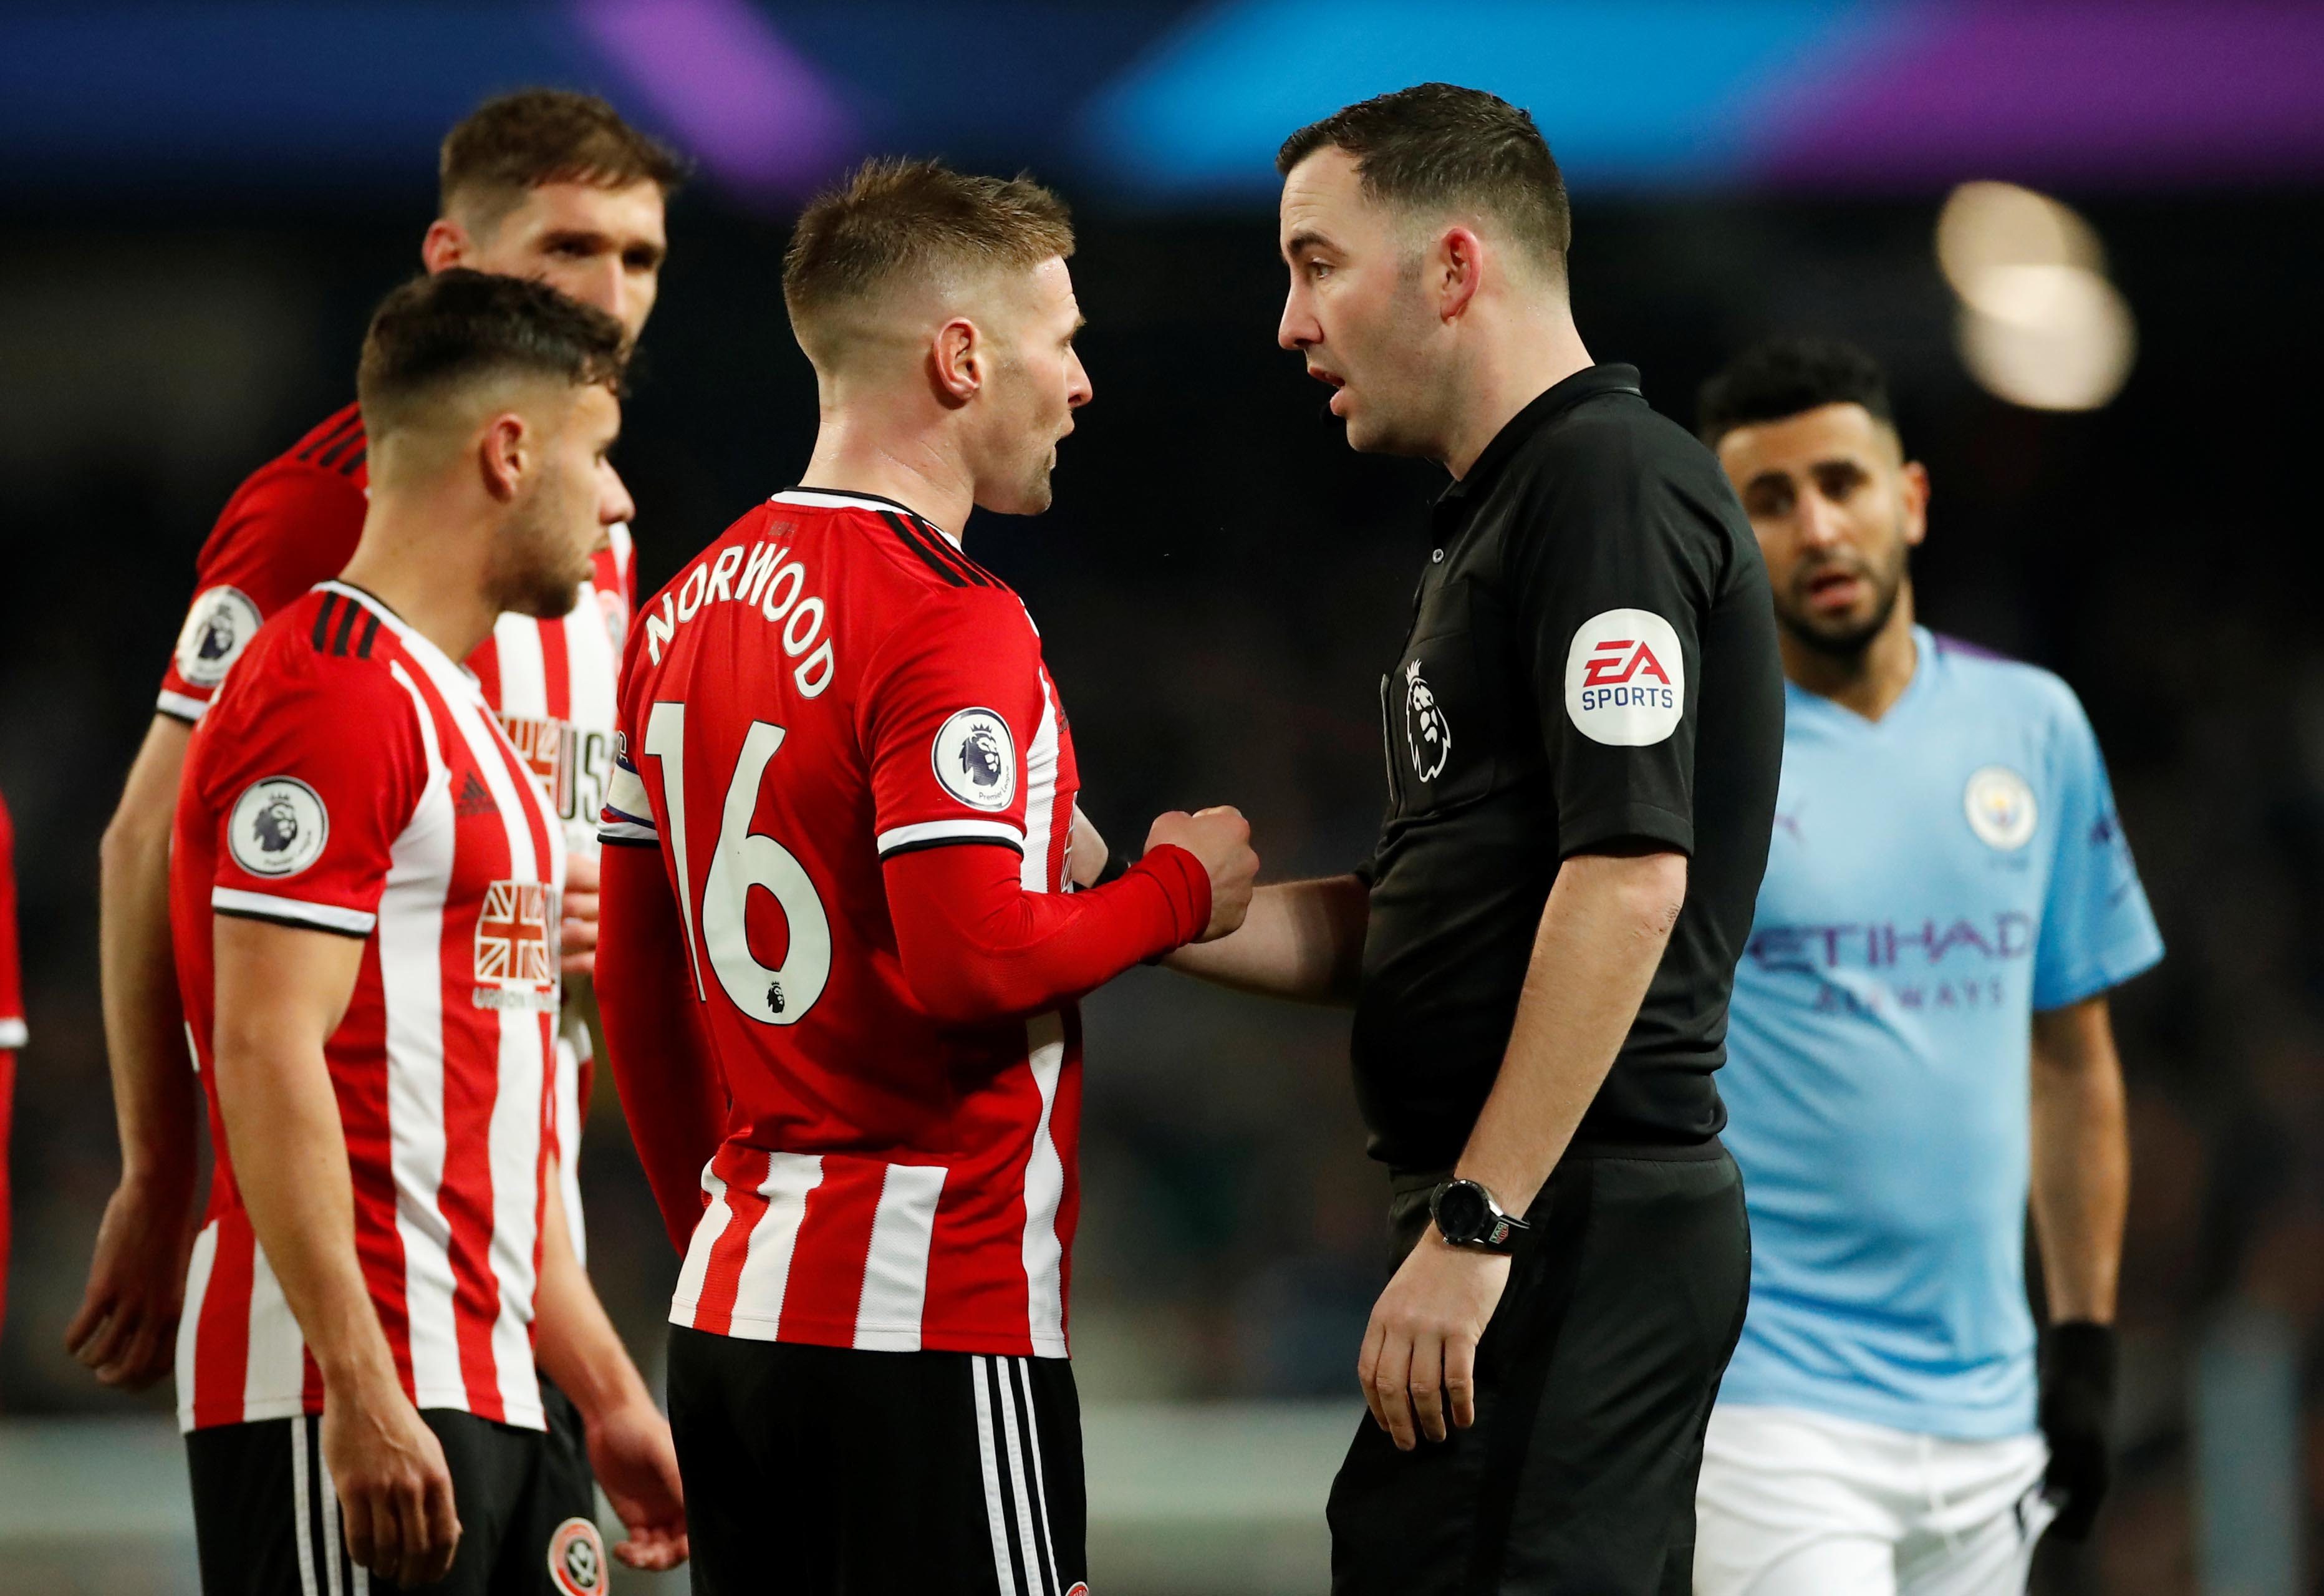 Sheffield United's Oliver Norwood appeals to referee Chris Kavanagh after Manchester City's first goal   during the Premier League match between Manchester City and Sheffield United, at Etihad Stadium, in Manchester, Britain, at December 29, 2019. Photo: Action Images via Reuters